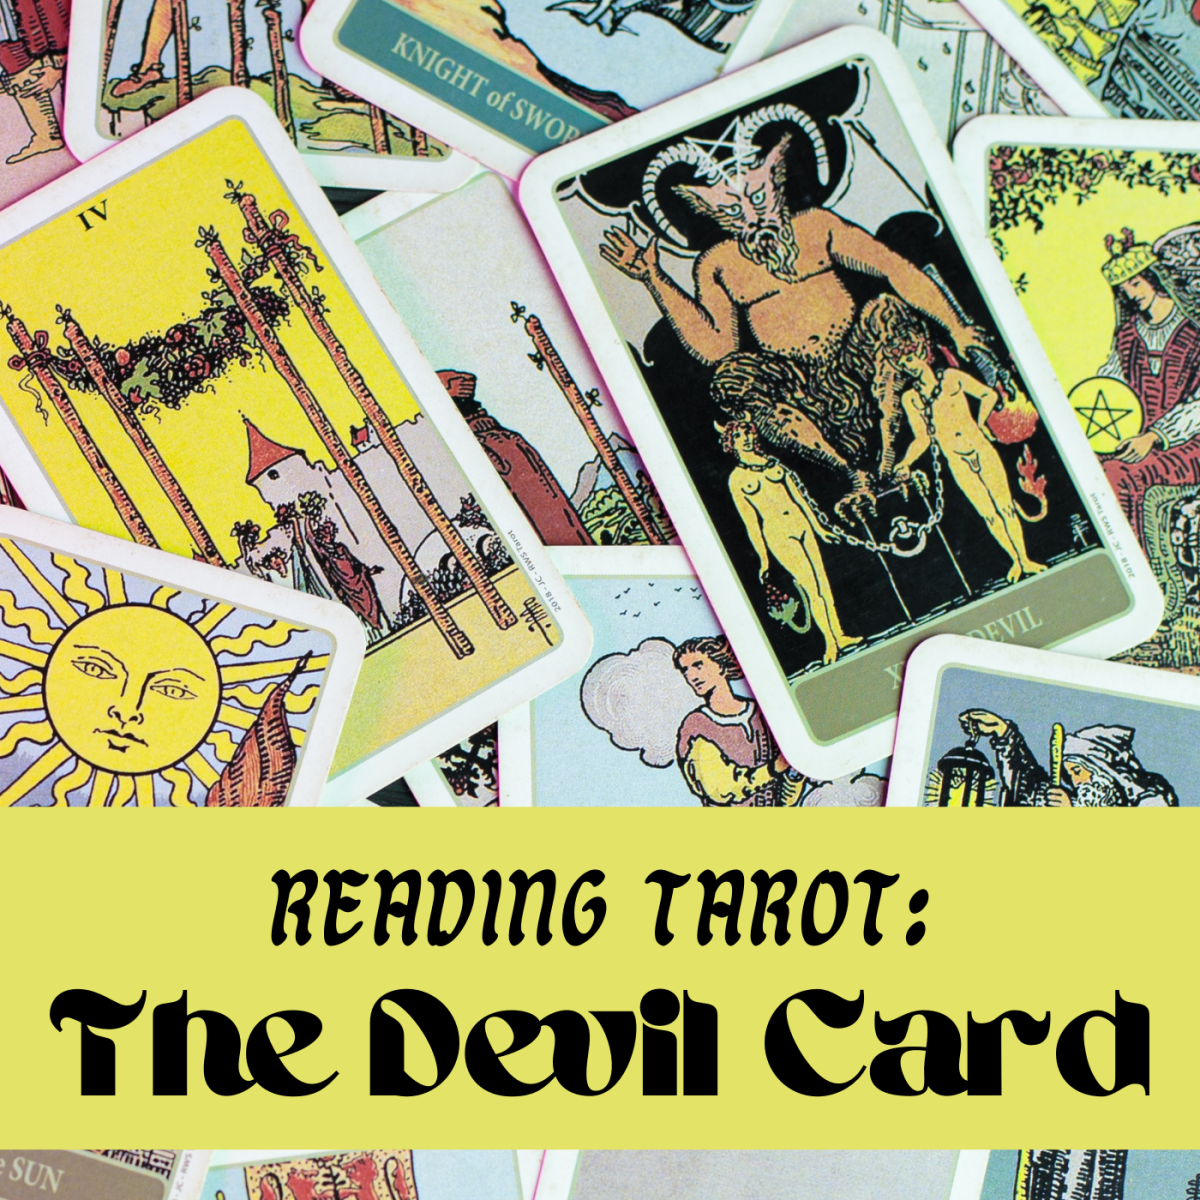 The Devil card in the Tarot gives people the creeps, but it could indicate some positive qualities about you. Don't let the card scare you.